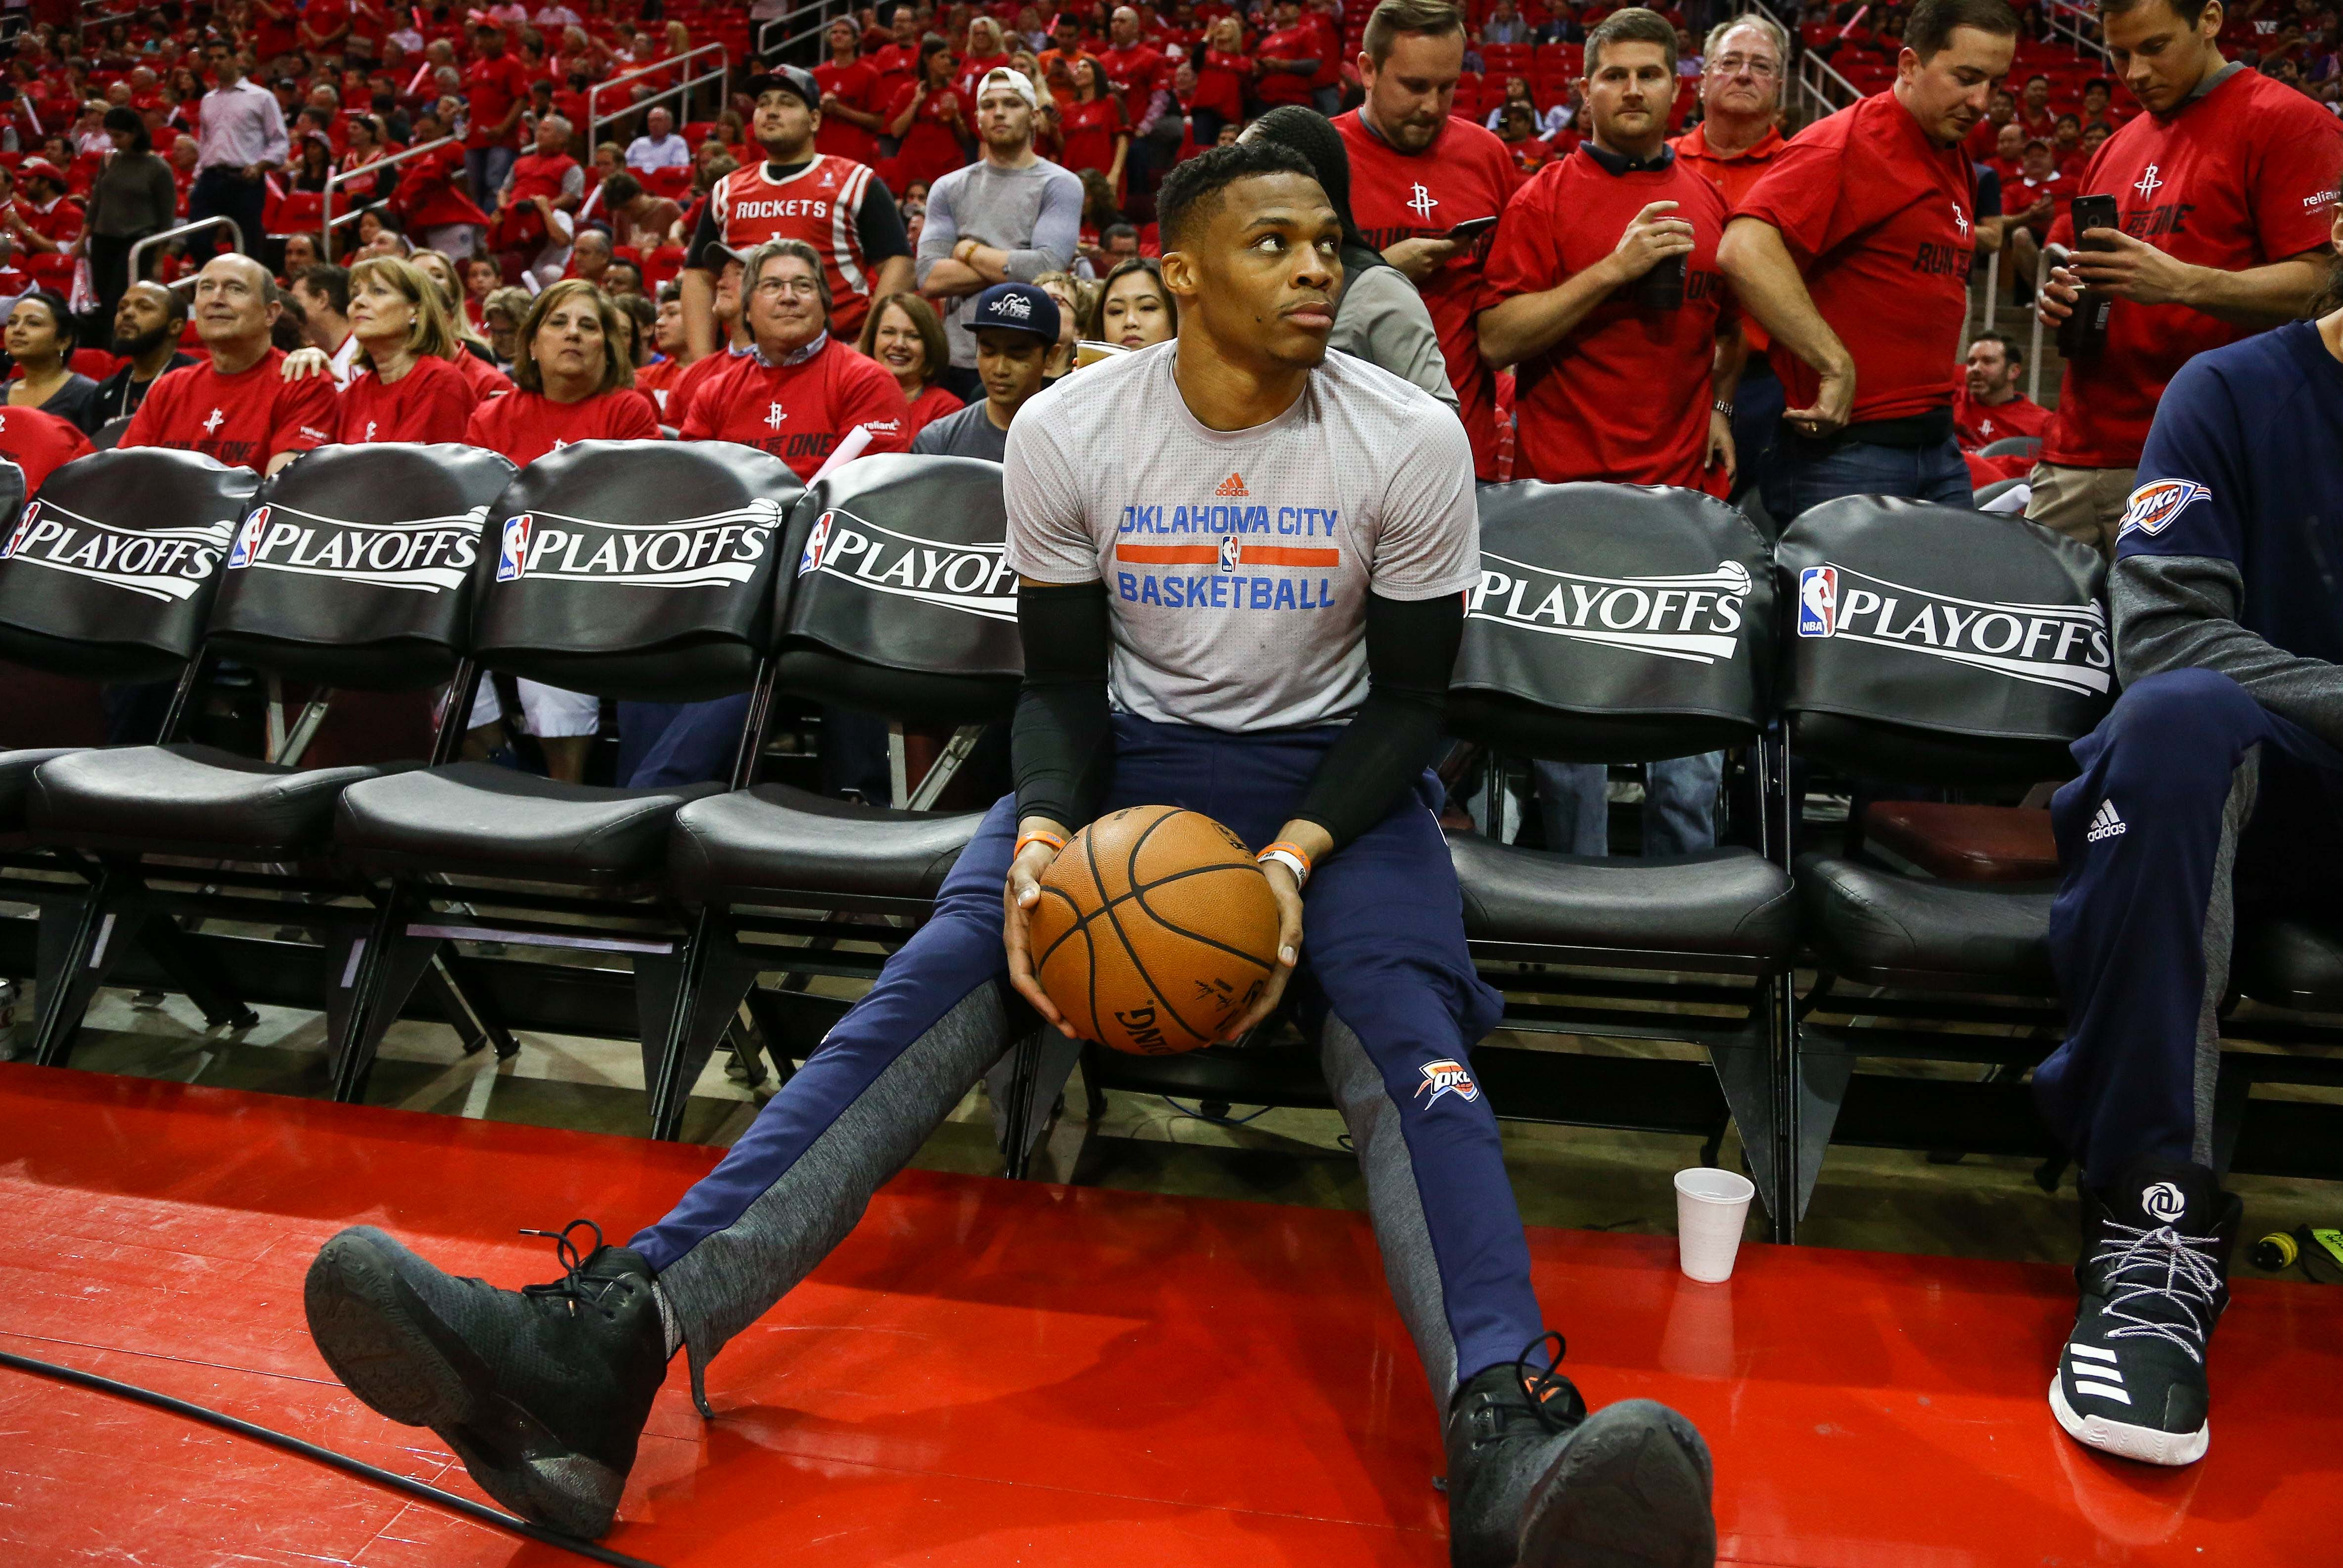 attending the oklahoma city thunders first round playoff game versus the houston rockets 2018 oklahoma city thunder playoff tickets and schedule 2018 2018-2019  oklahoma city thunder season tickets (includes tickets to all regular  to  attend or use the opponent or date filters beside the oklahoma city thunder  playoff  2017: lost western conference first round 1-4 (houston rockets)  2016: lost.